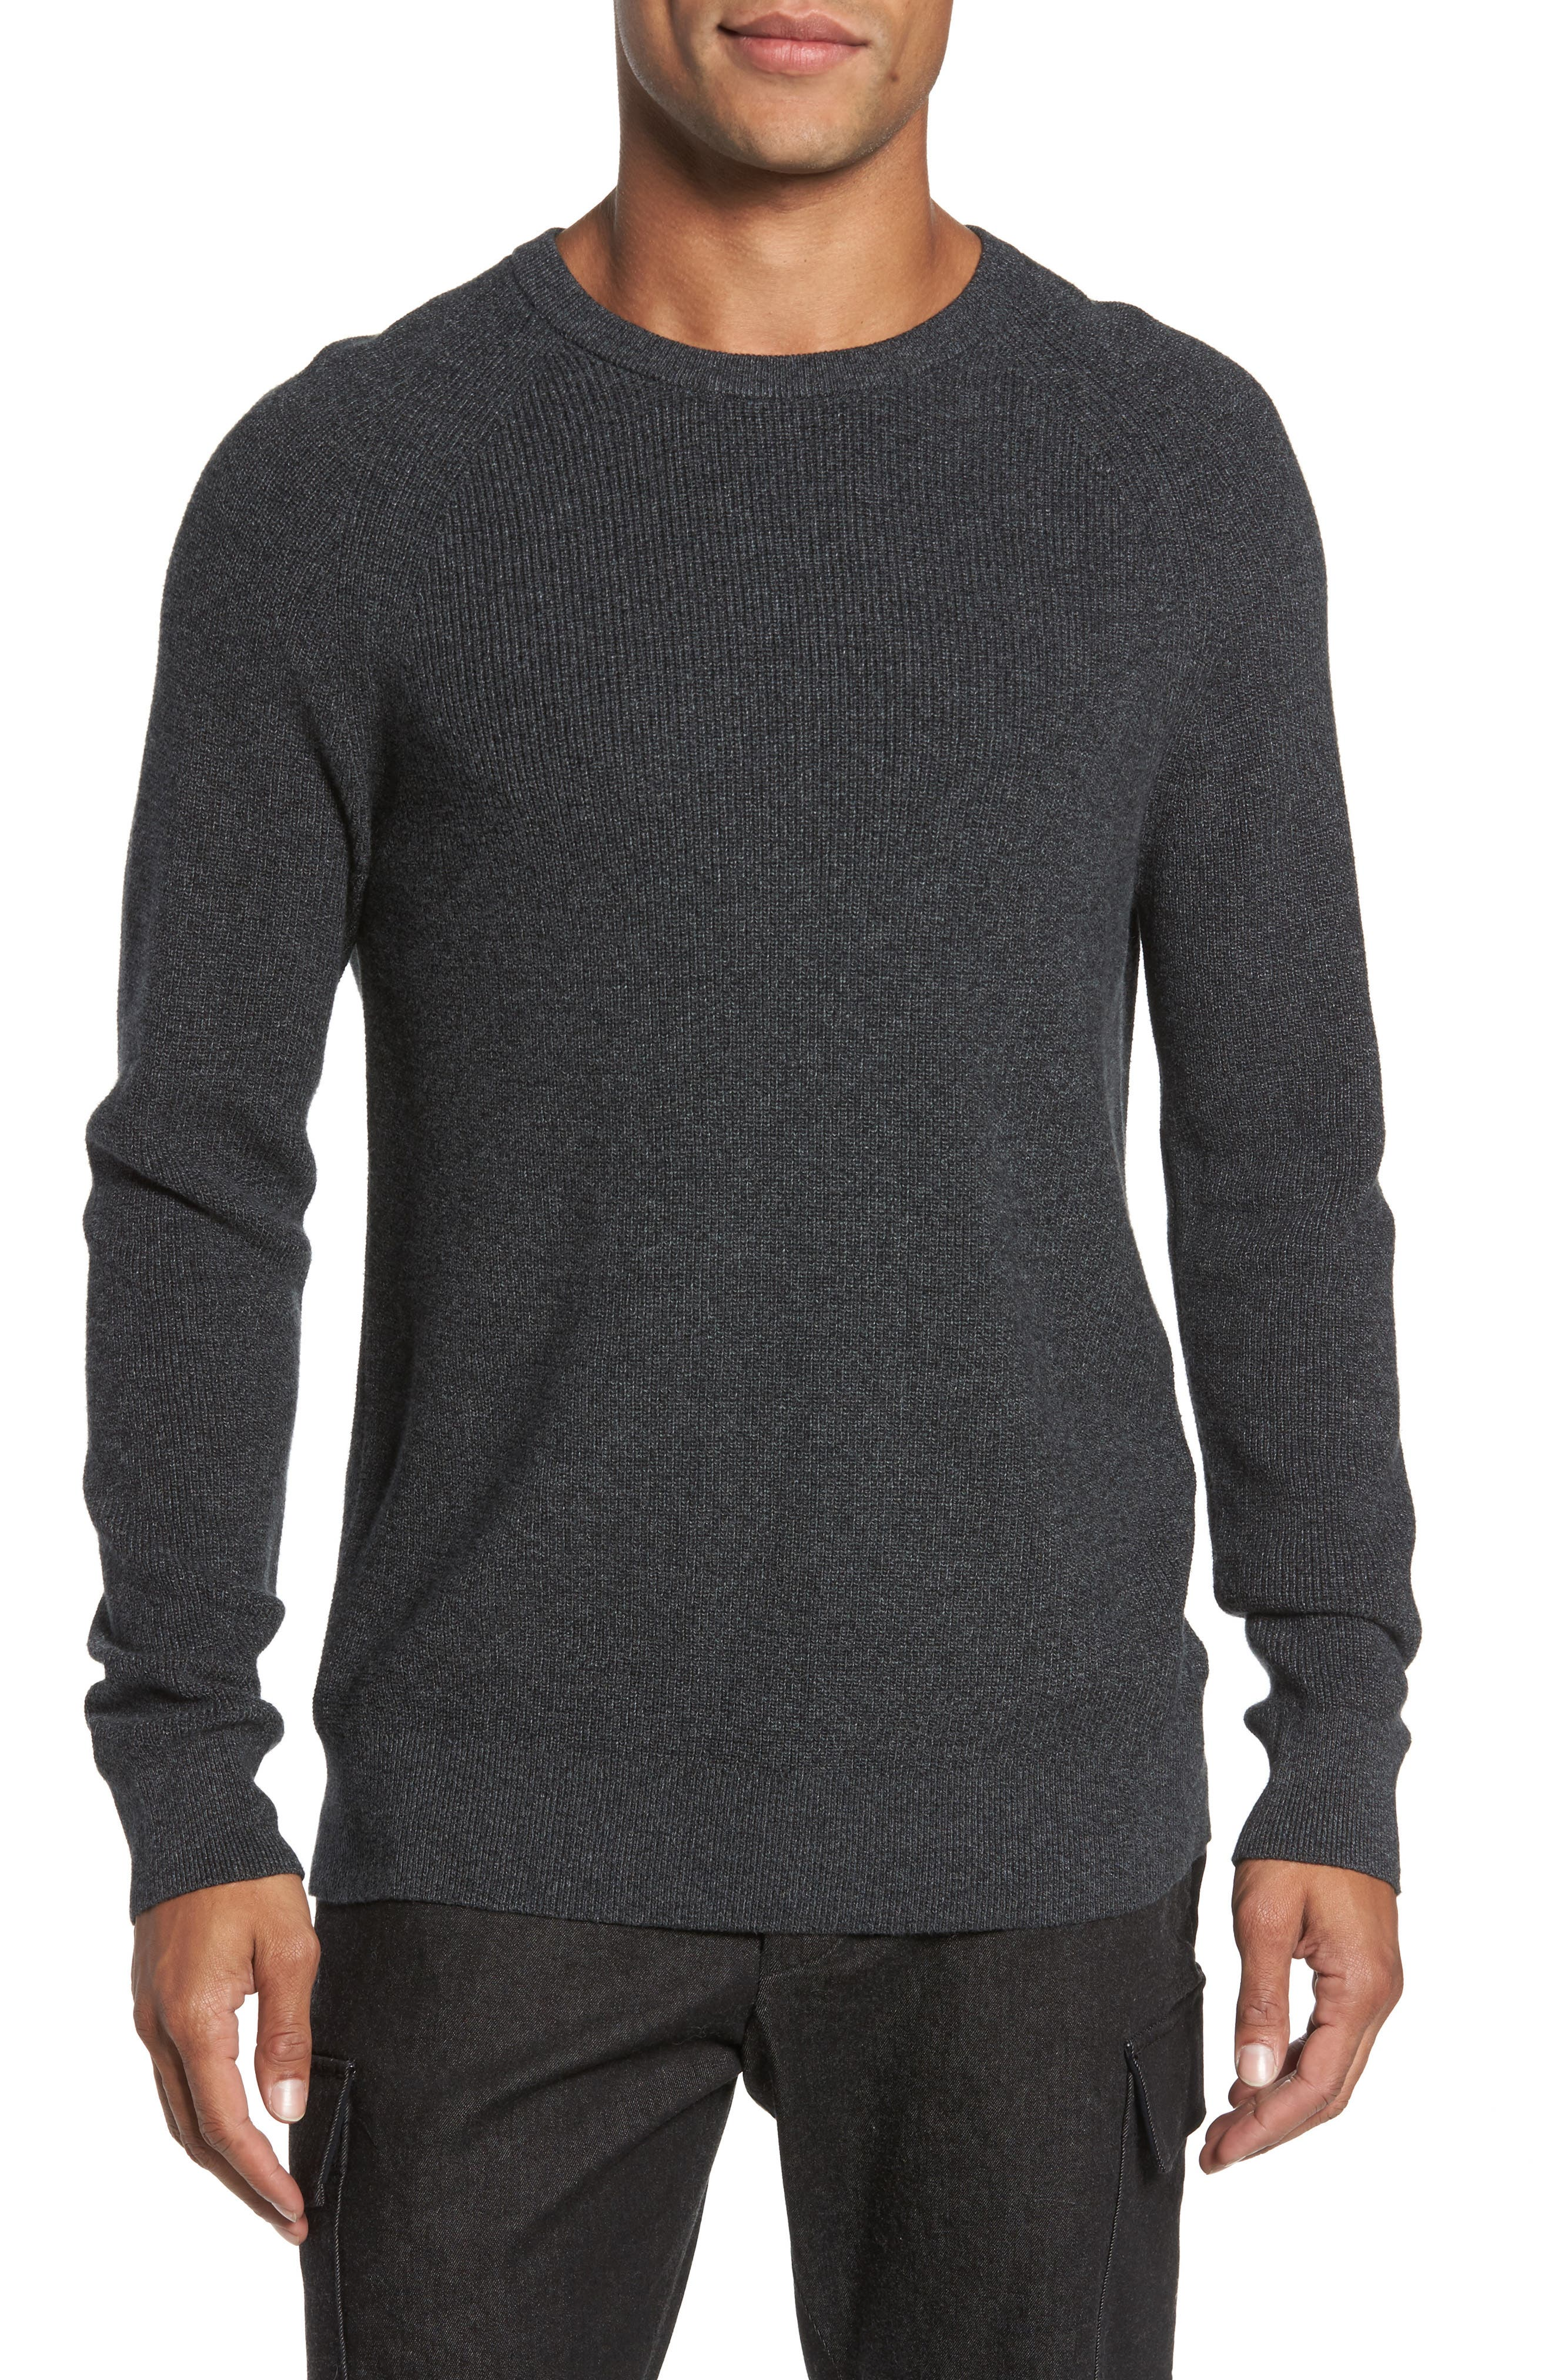 Alternate Image 1 Selected - French Connection Ribbed Crewneck Sweater